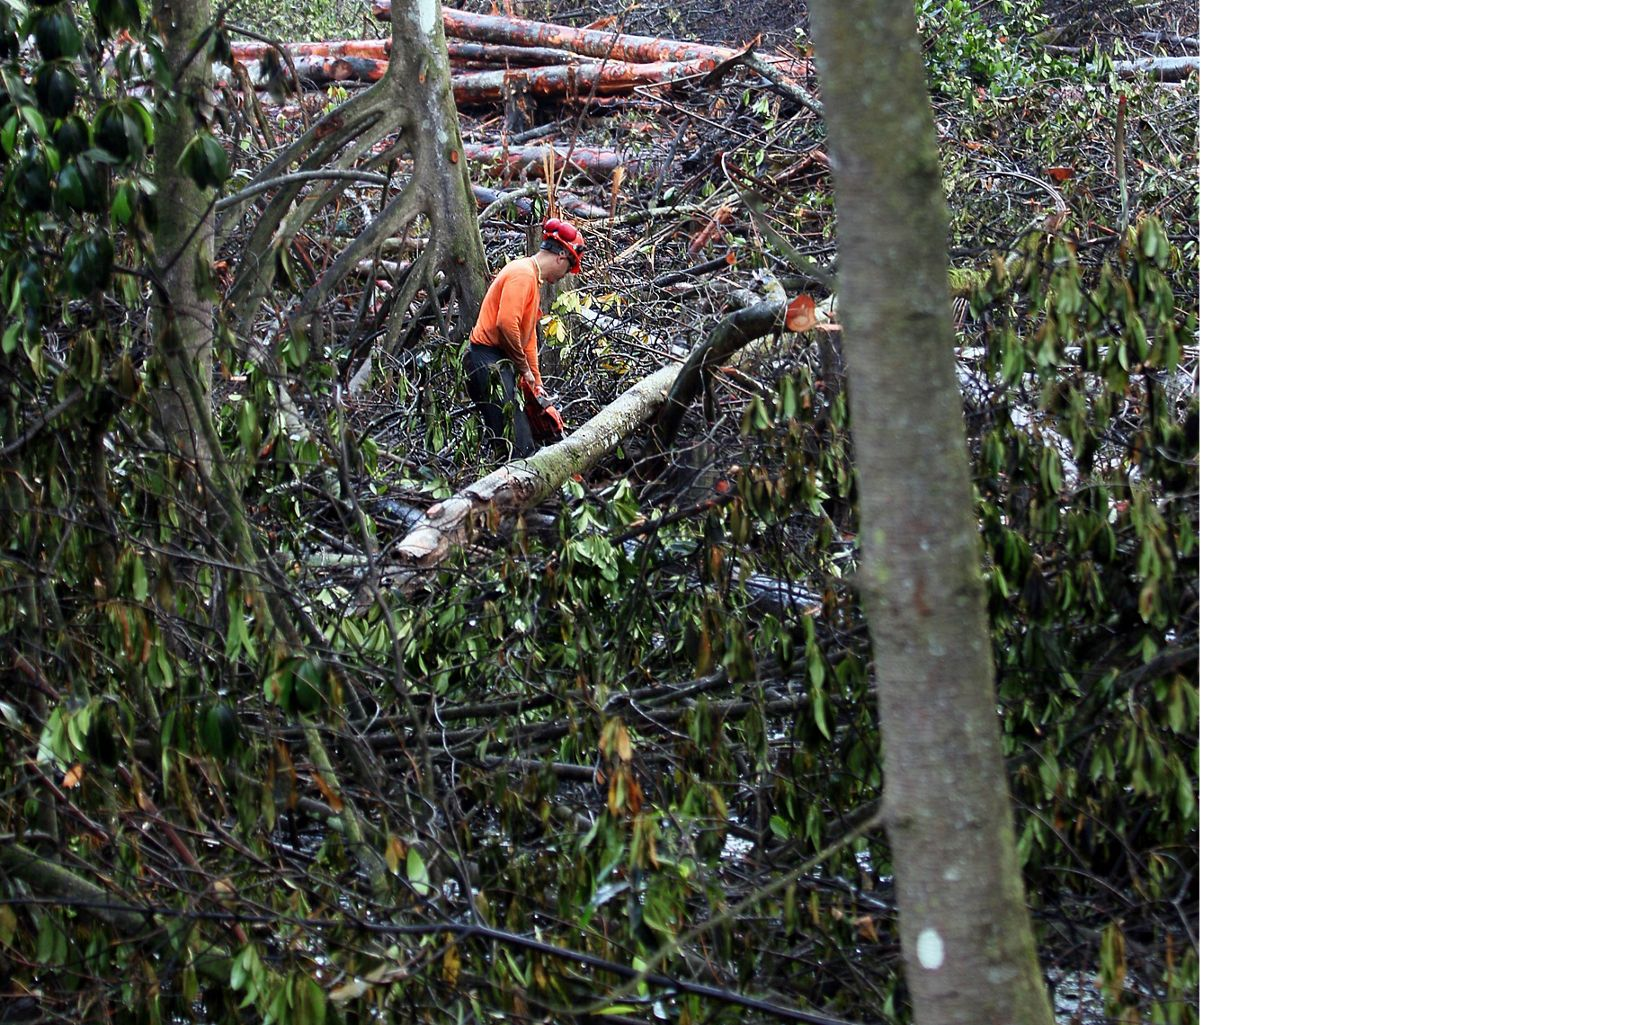 Worked clearing mangrove tress at Heʻeia